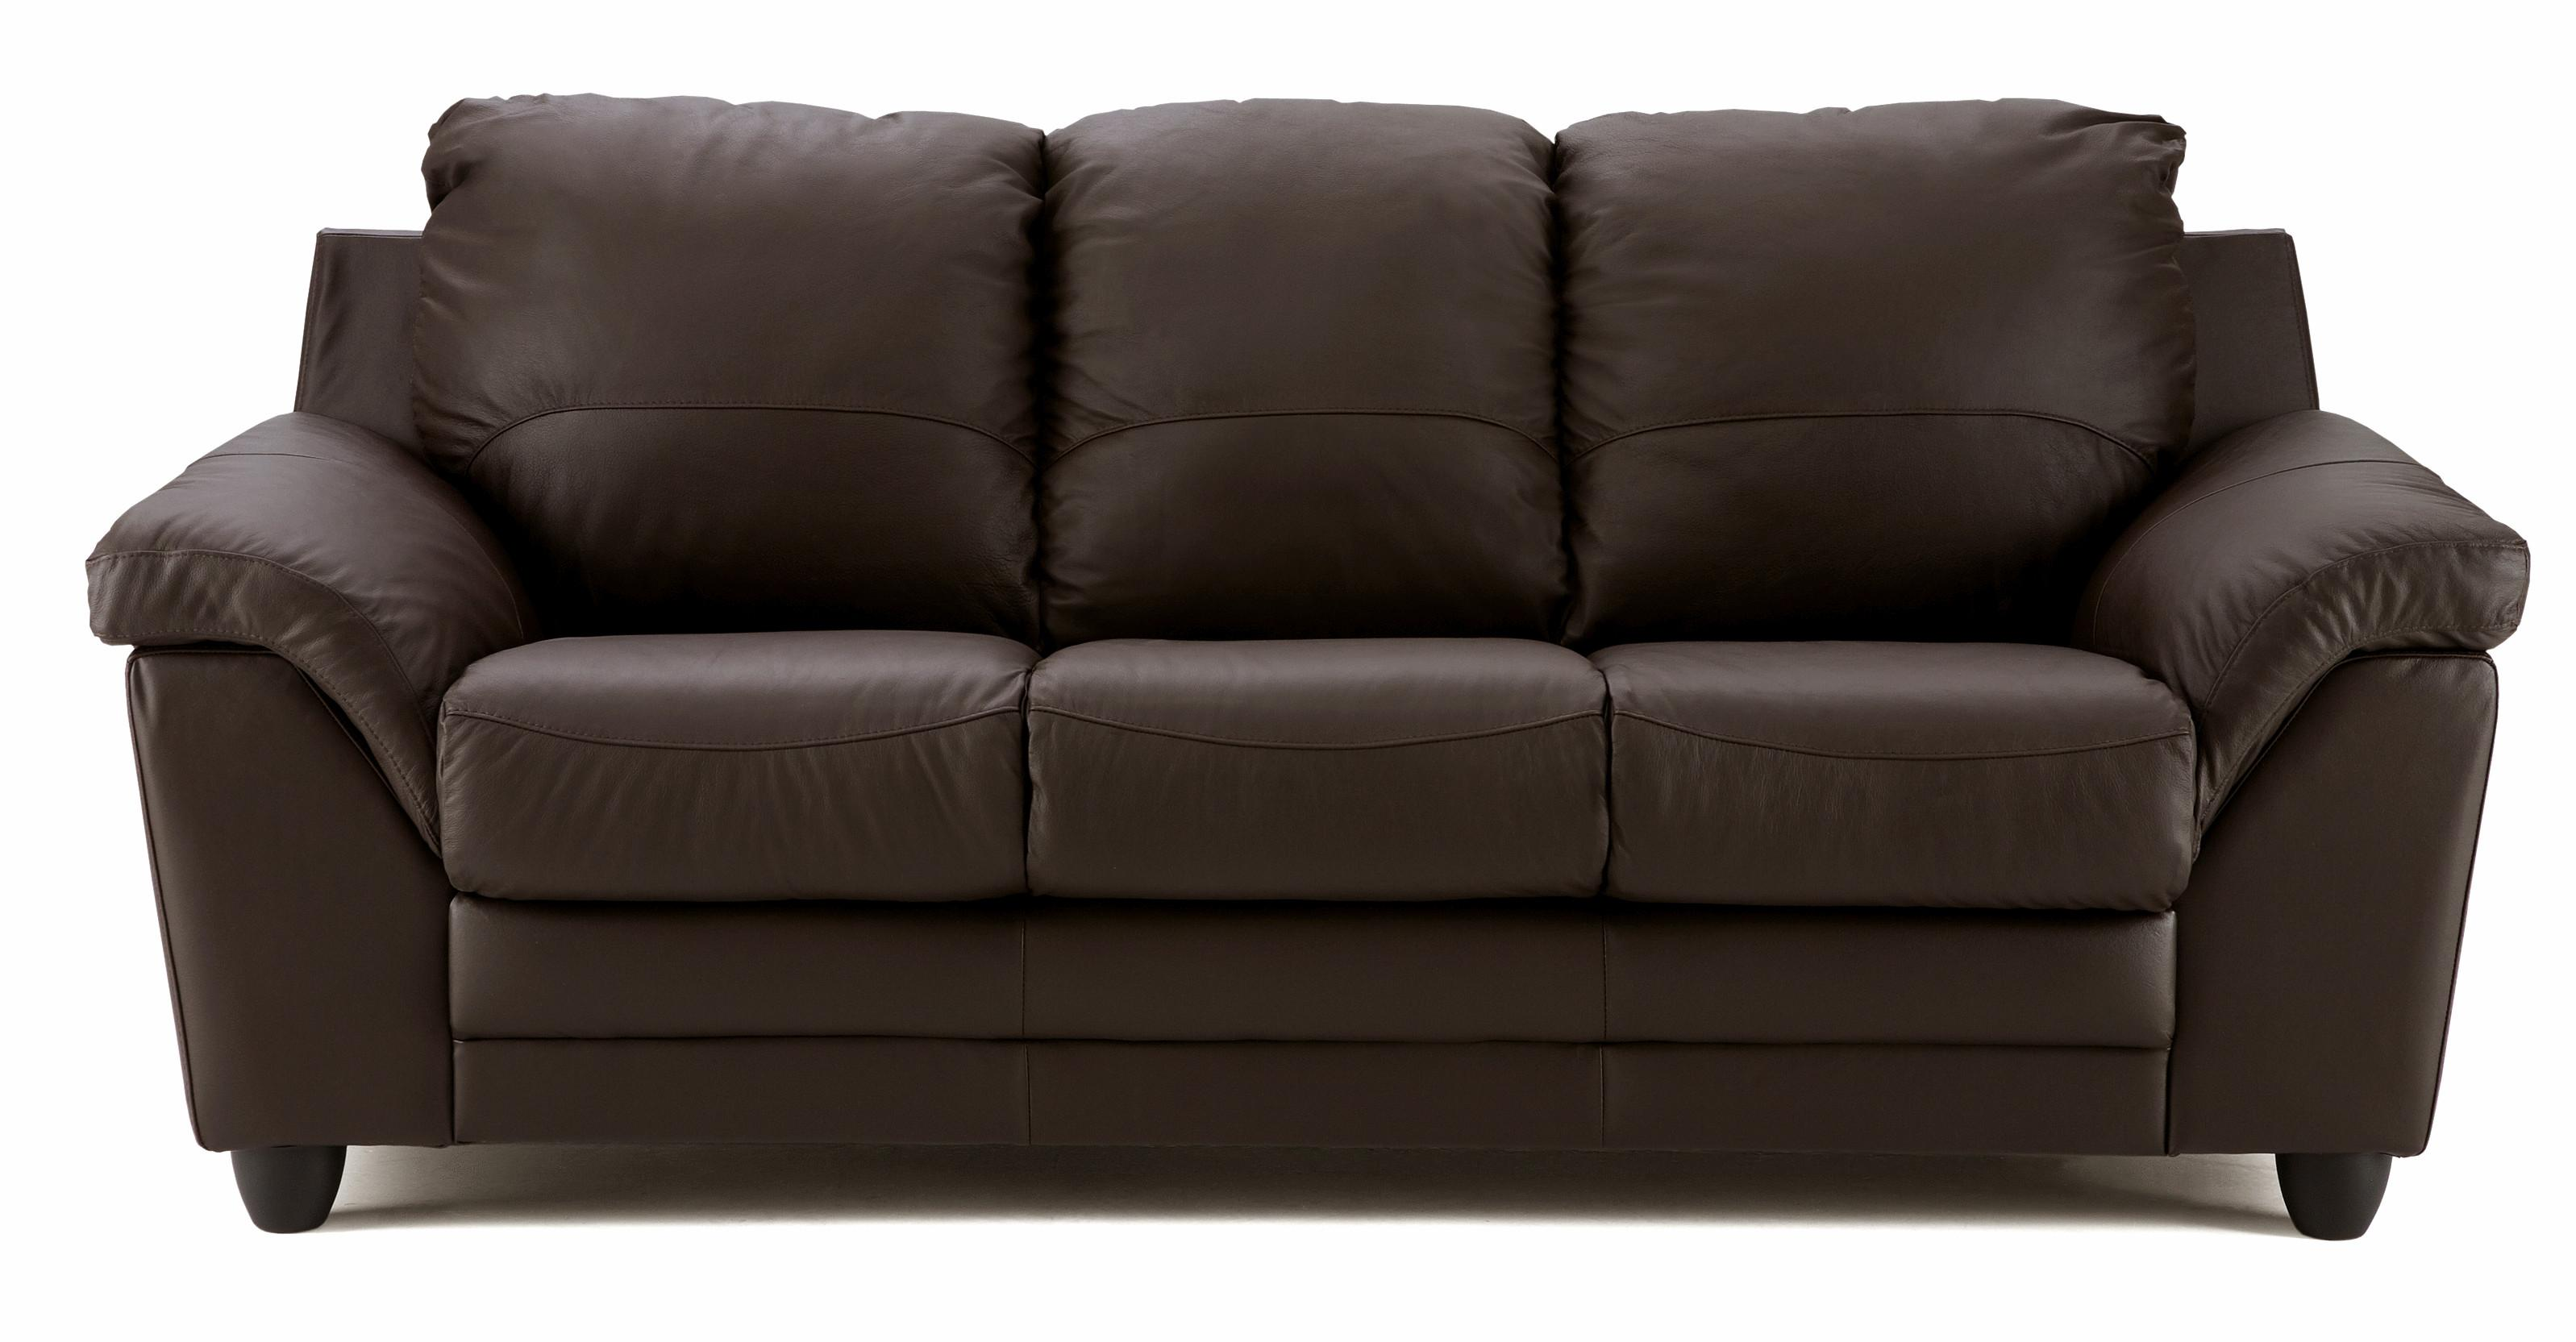 palliser stationary sofas best sofa manufacturers usa sirus casual with sloped pillow arms ahfa